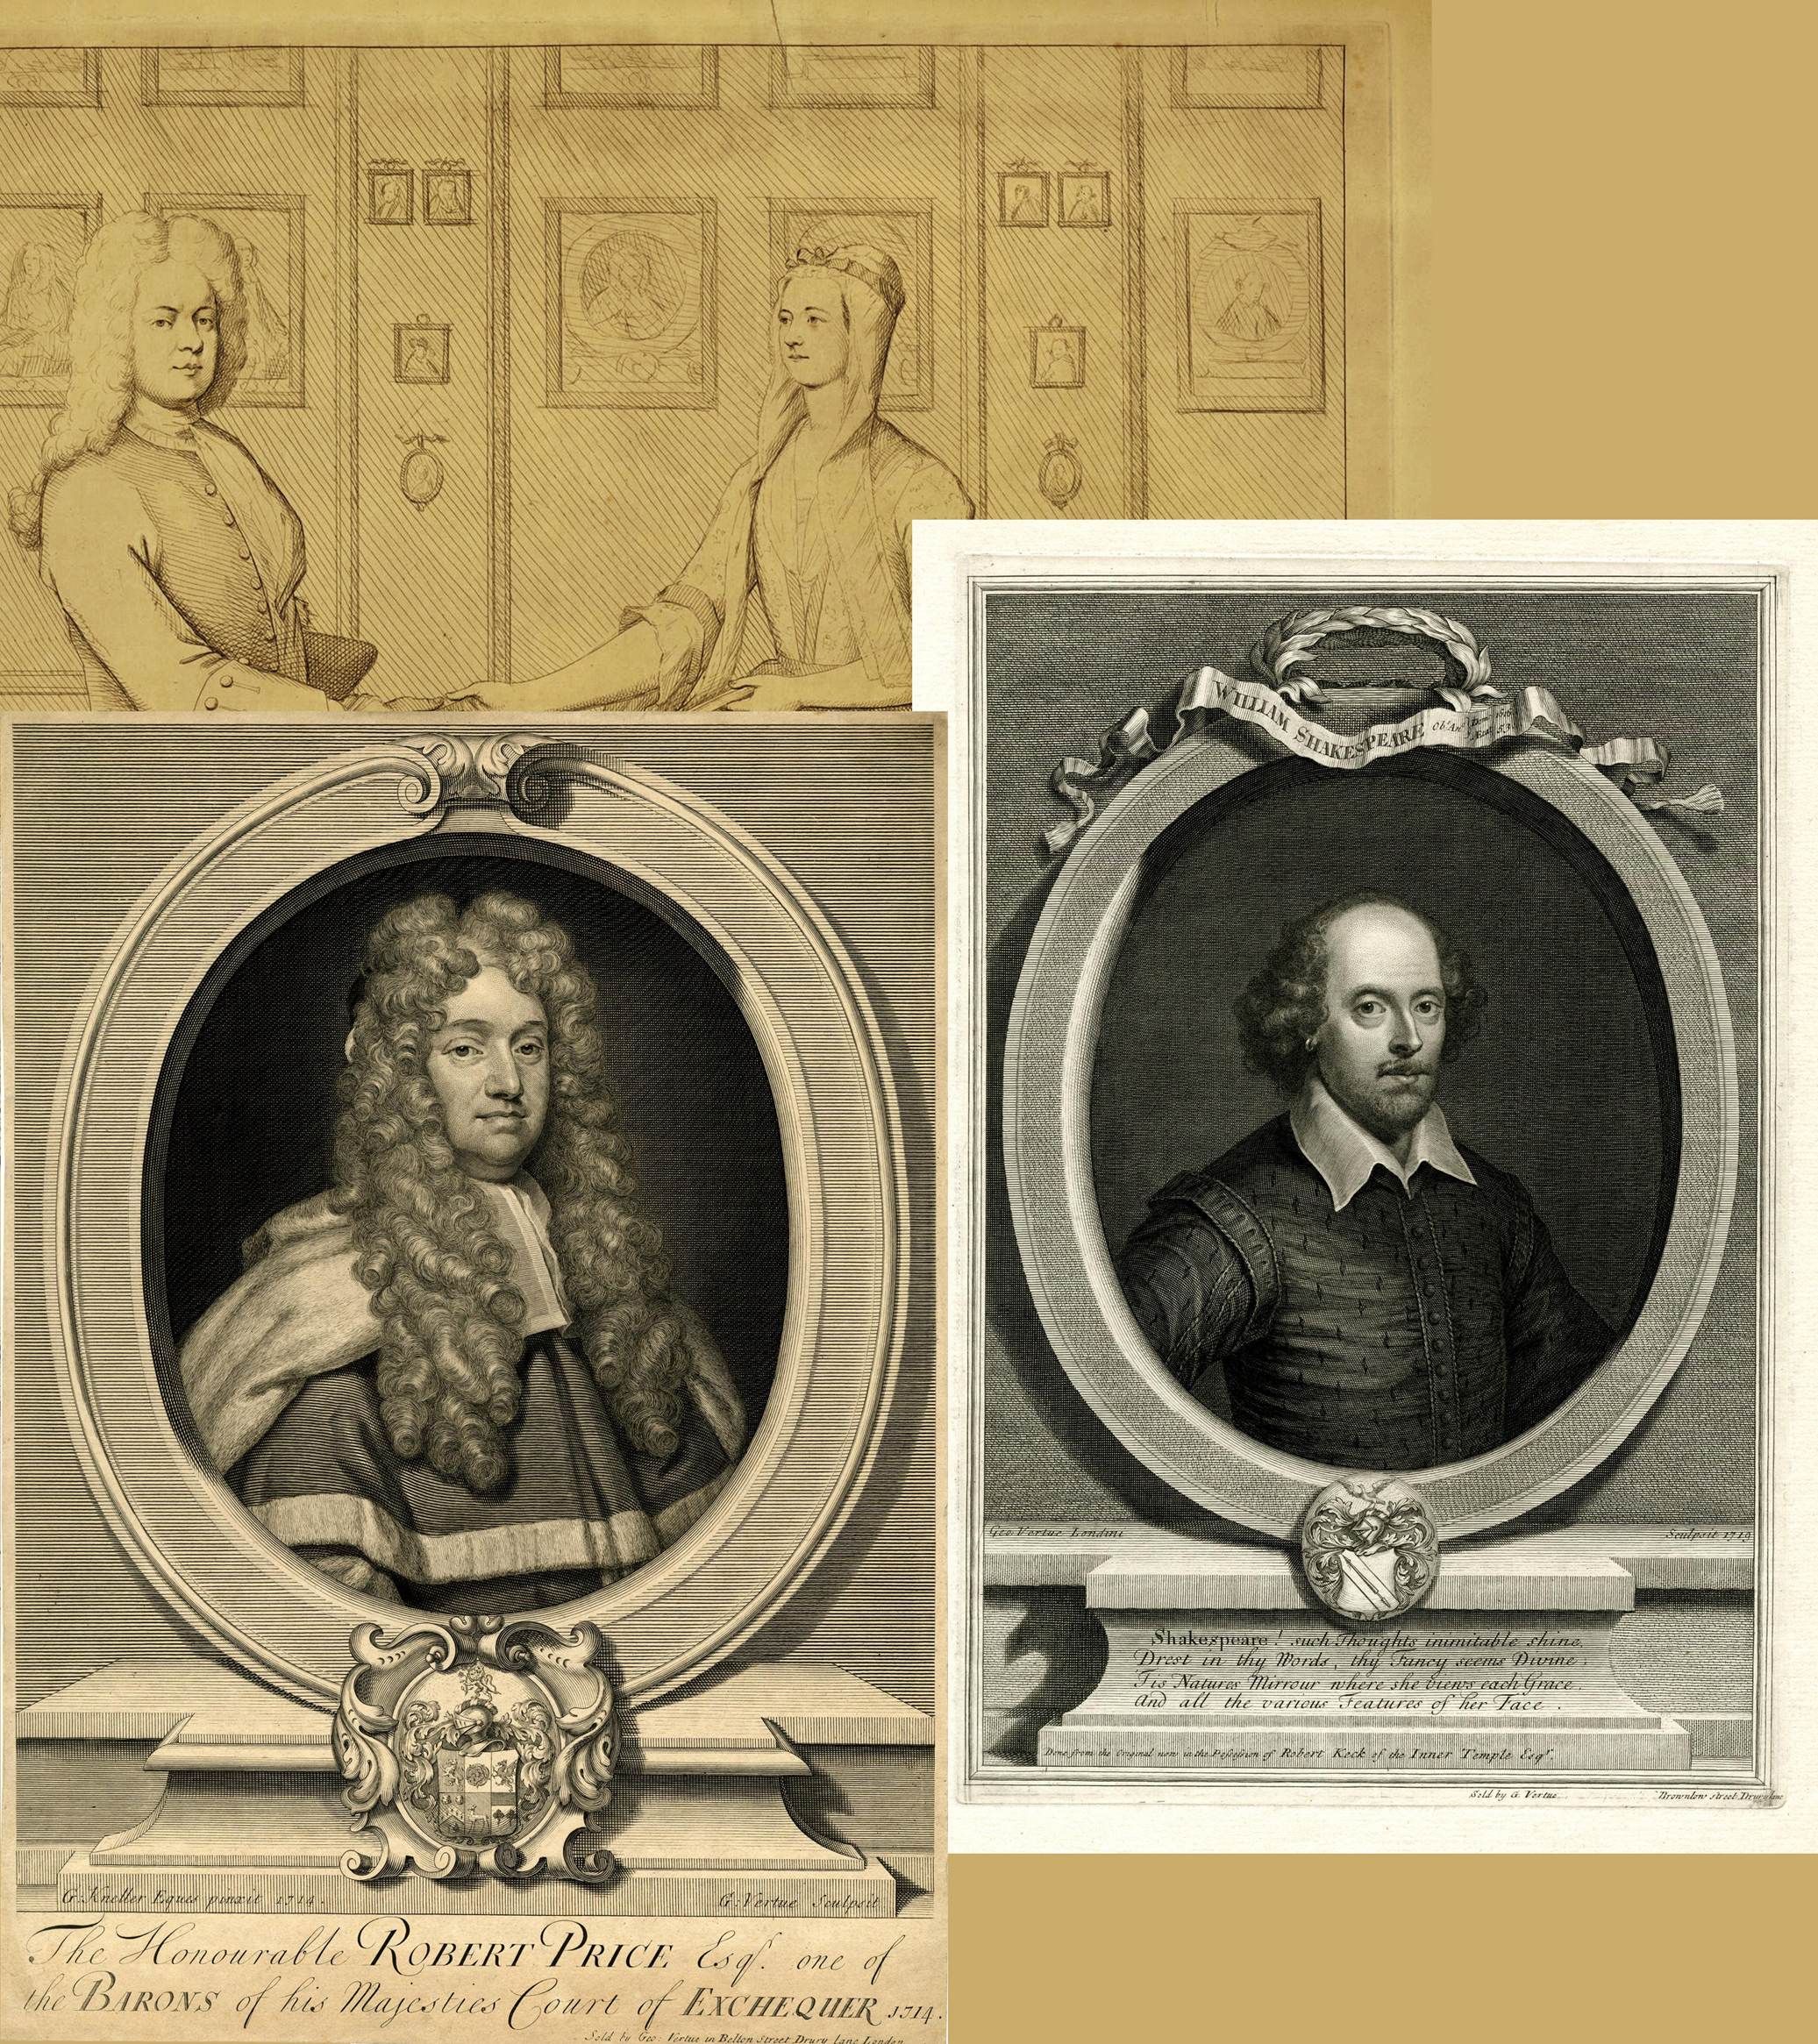 17 Wm Humphrey after George Vertue GV & Margaret his Wife plus prints of Price by Kneller & Shakespeare BM